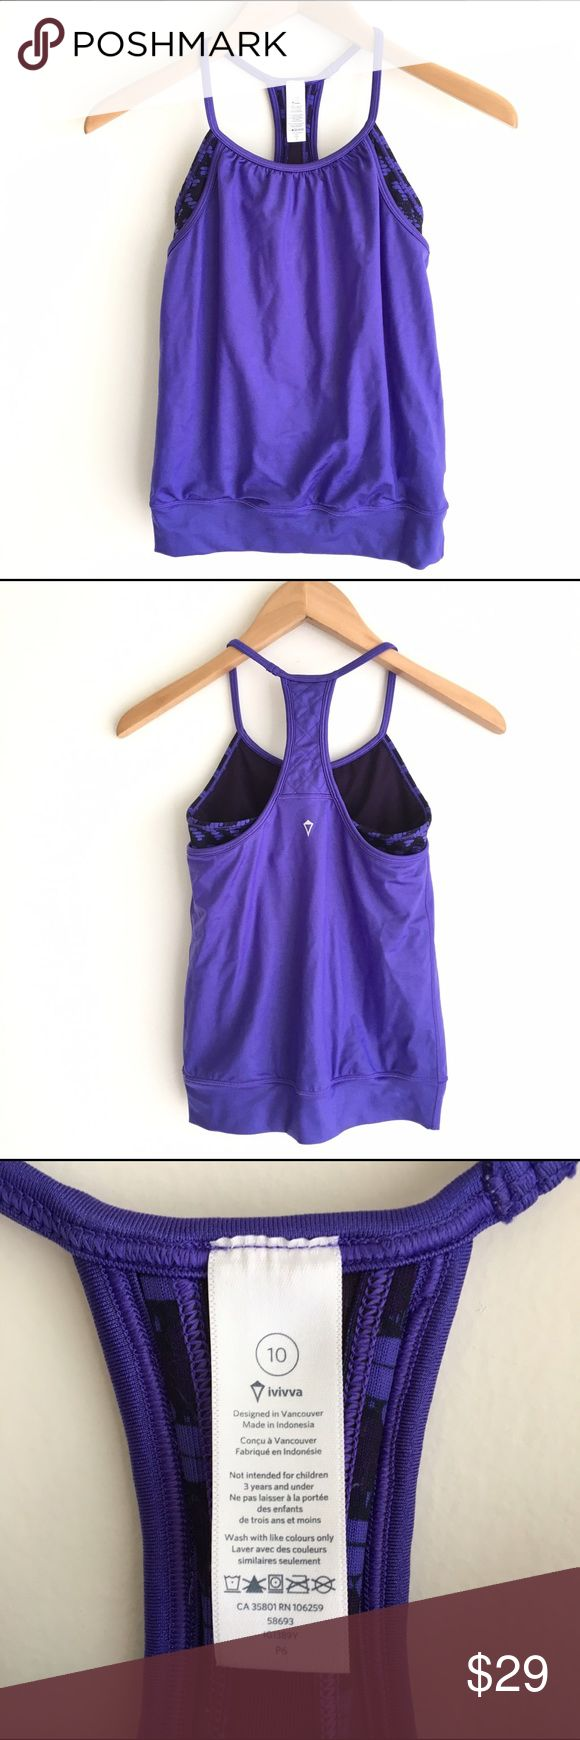 Ivivva Purple Double Dutch Tank Ivivva, little sister brand to lululemon. Double layer tank offers coverage. Top layer in mesh fabric is light weight and sweat wicking. Added lycra for extra stretch and long term shape retention. Tight fitted body. Racerback. Bottom hem band keeps tank in place. Purple tank with black and purple interior print. Excellent condition. Ivivva Shirts & Tops Tank Tops